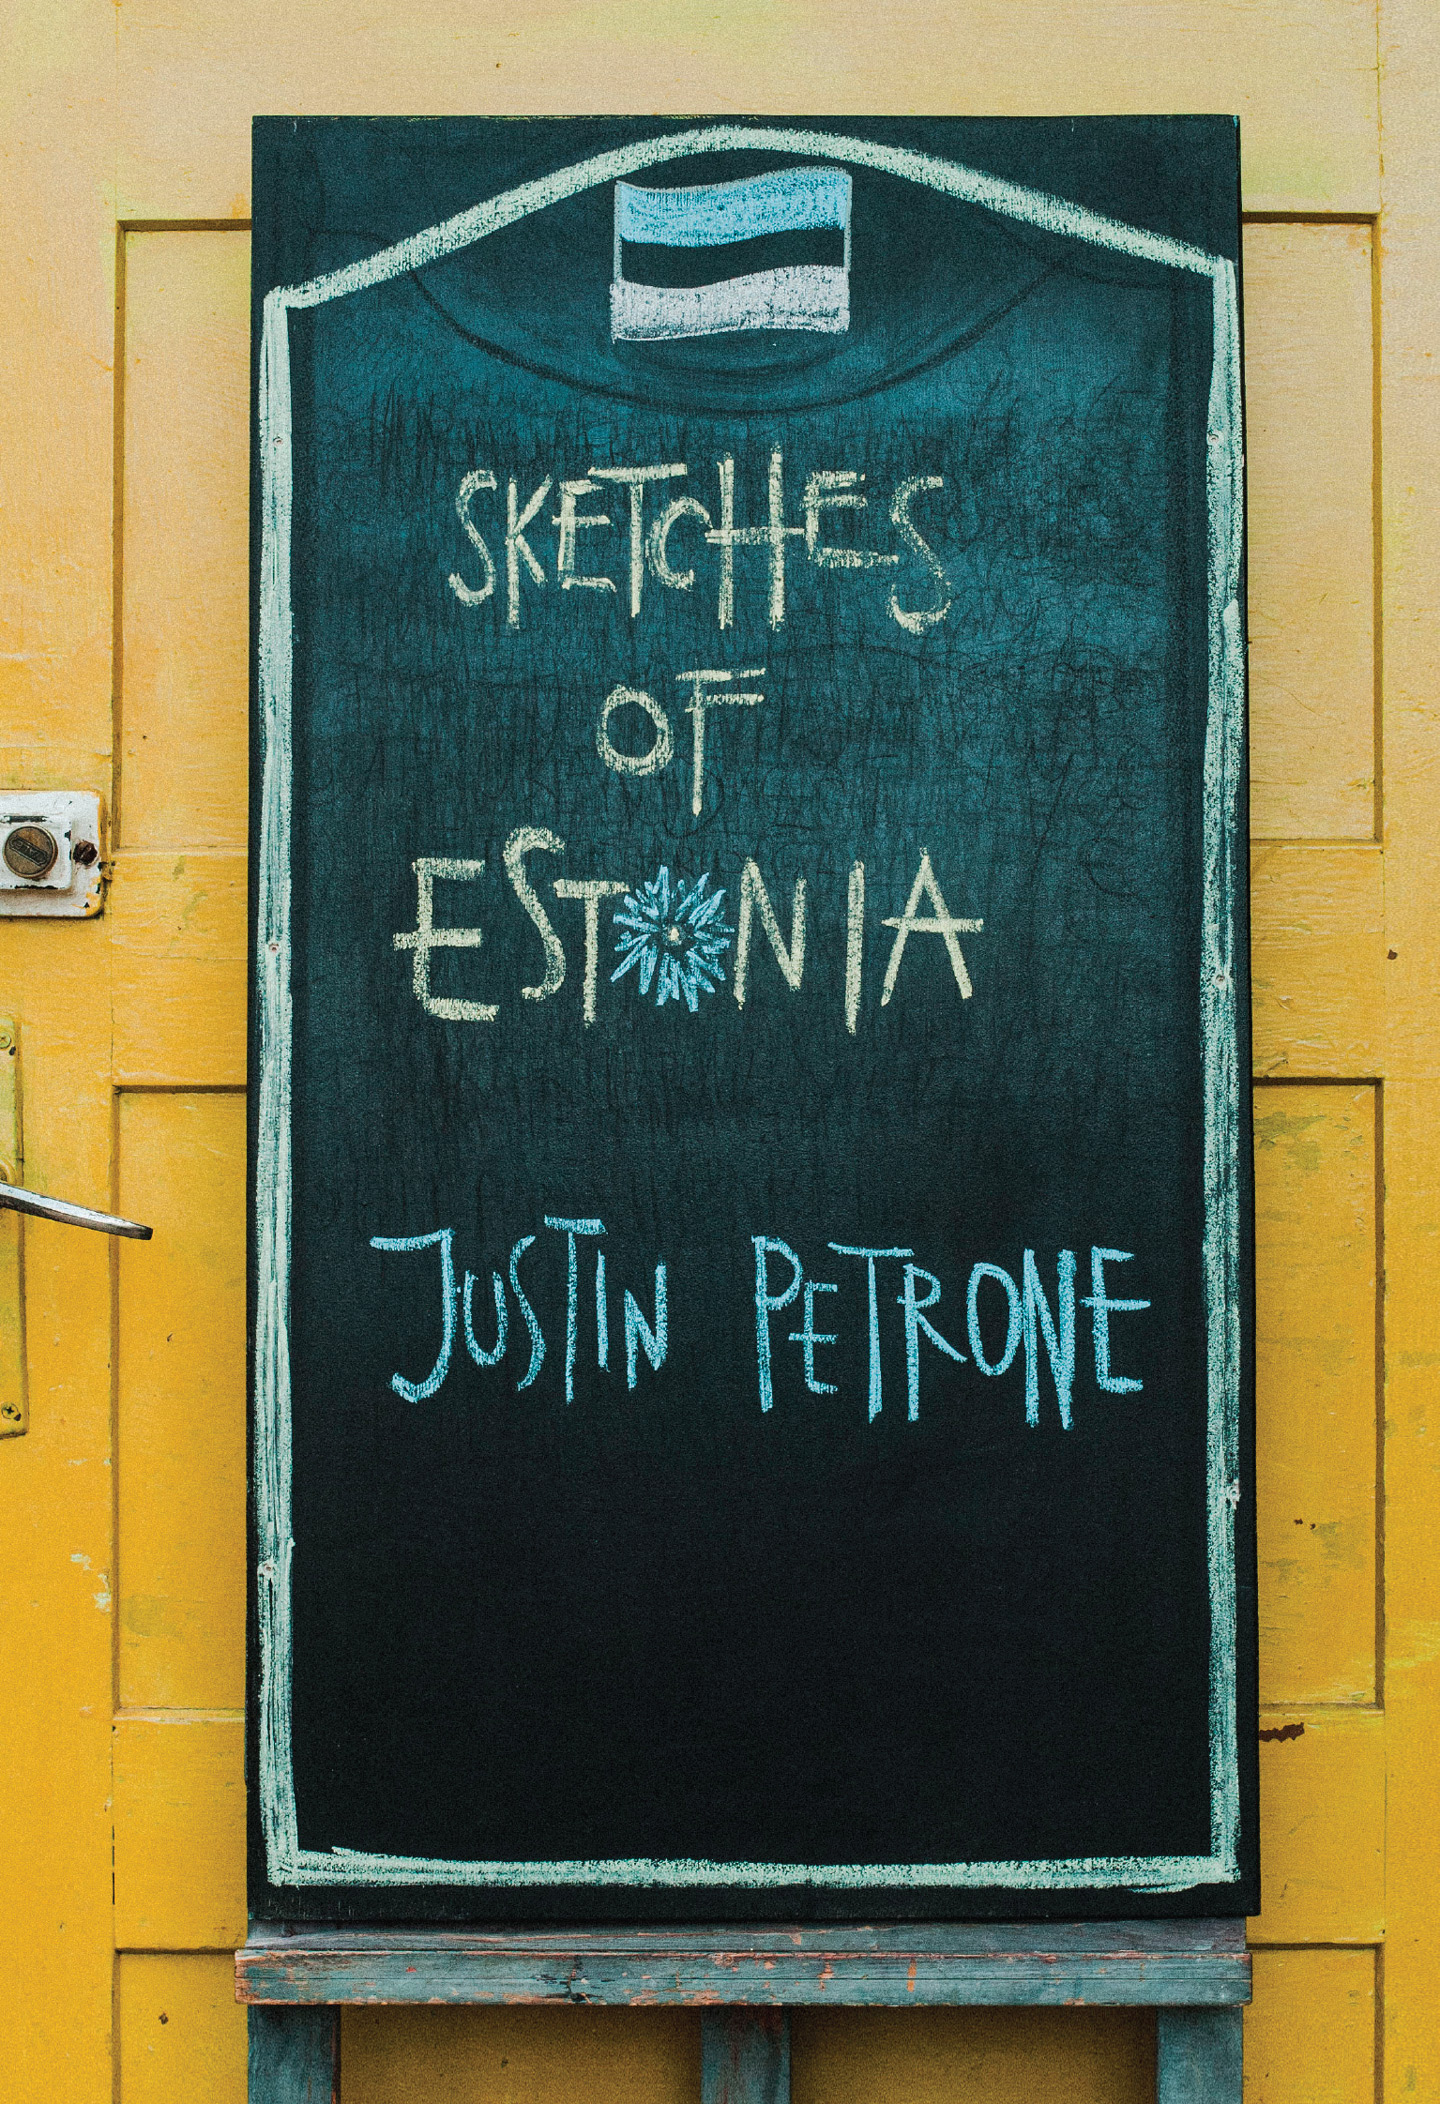 Justin Petrone Sketches of Estonia short uv lamp of wp601 accessories of vacuum cleaner